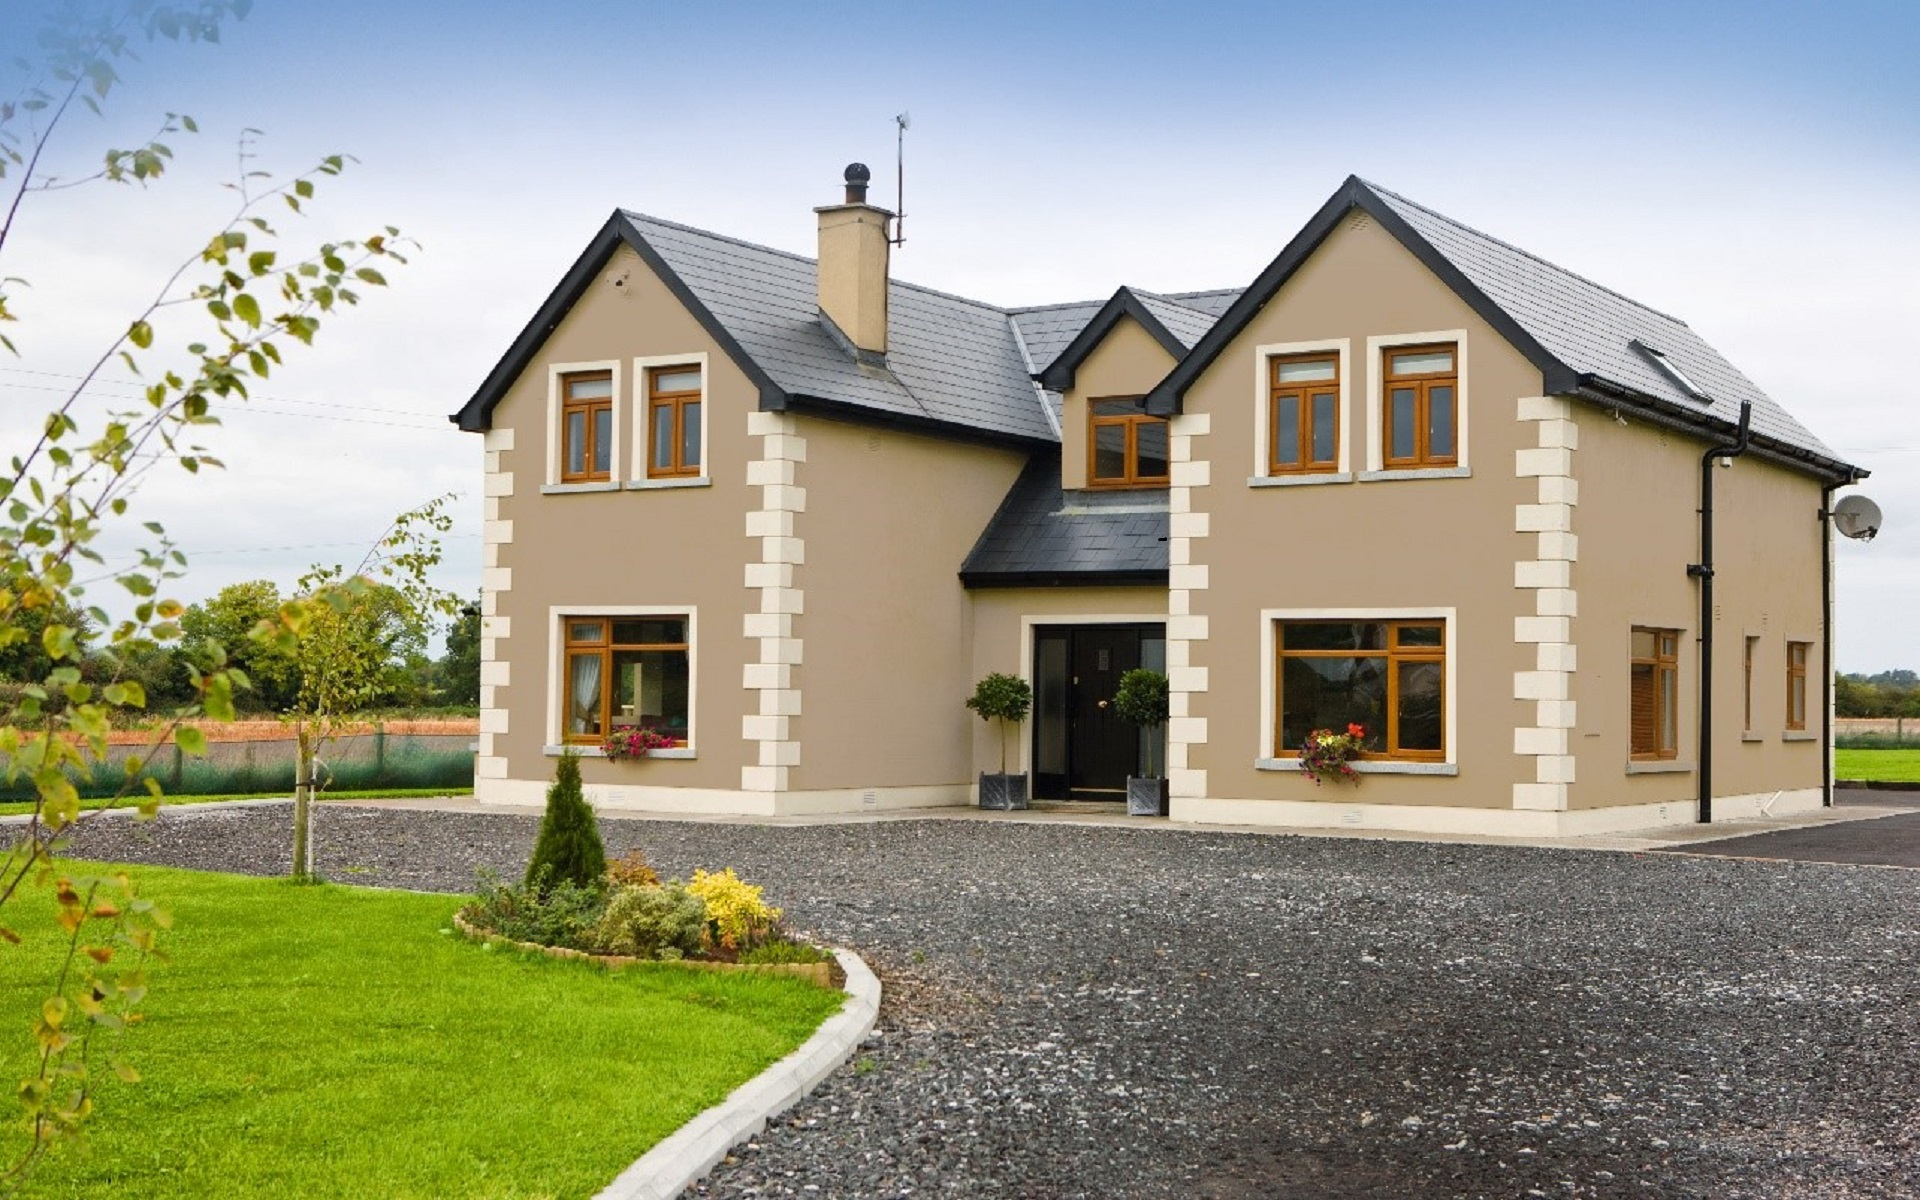 The Advantages of Getting a House Insurance through an ...